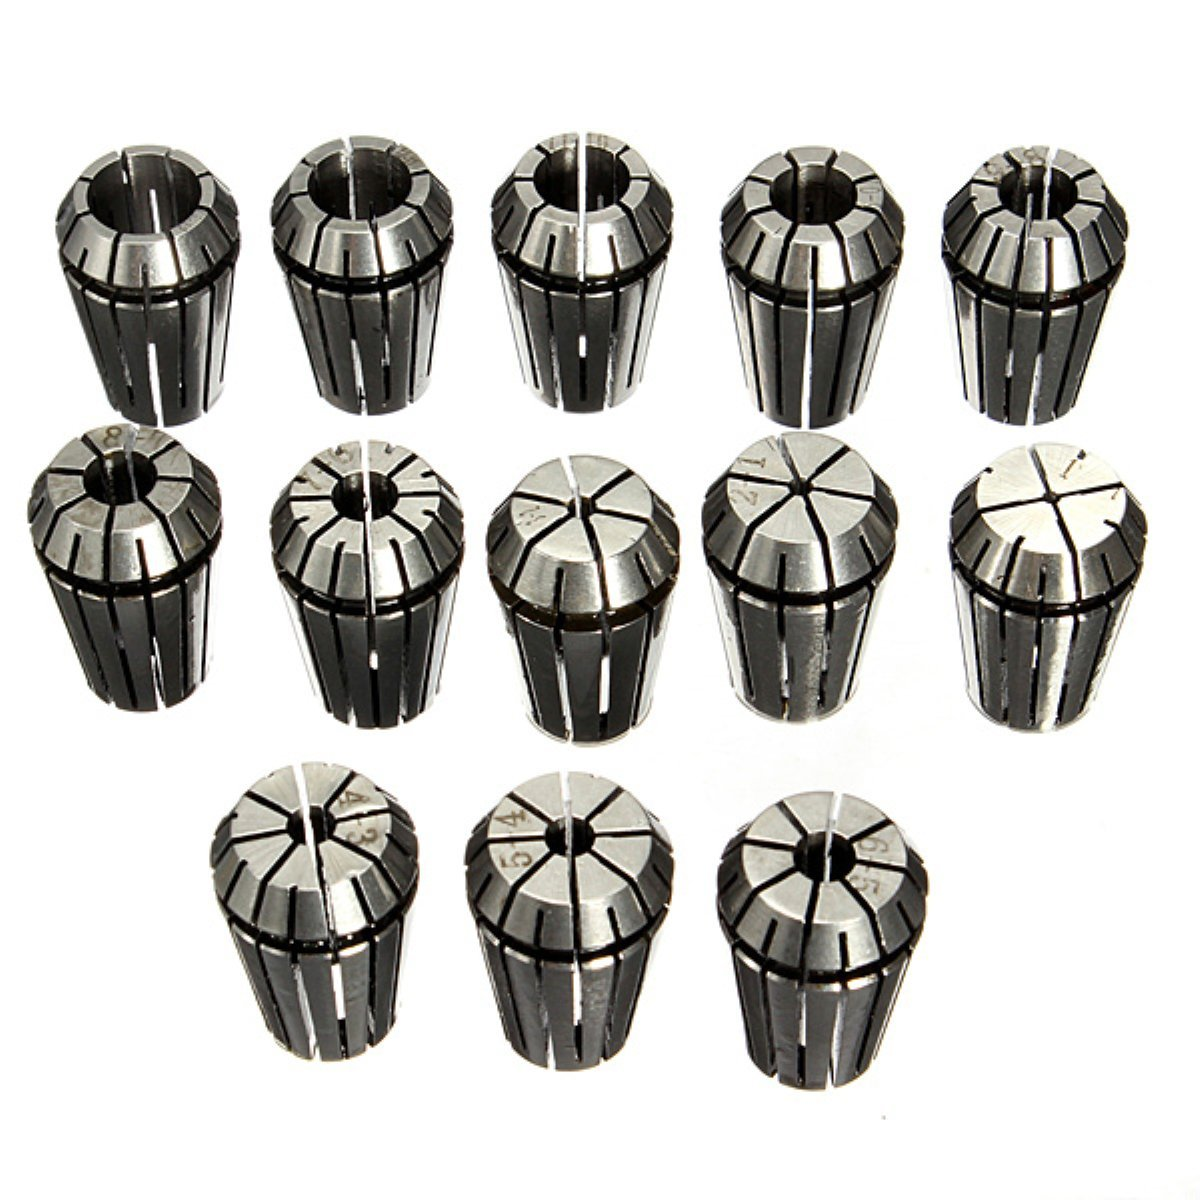 13 pieces ER20 Collets for CNC Milling Machines Tool Engraving Machine unich 600 900 mm engraving and milling machines